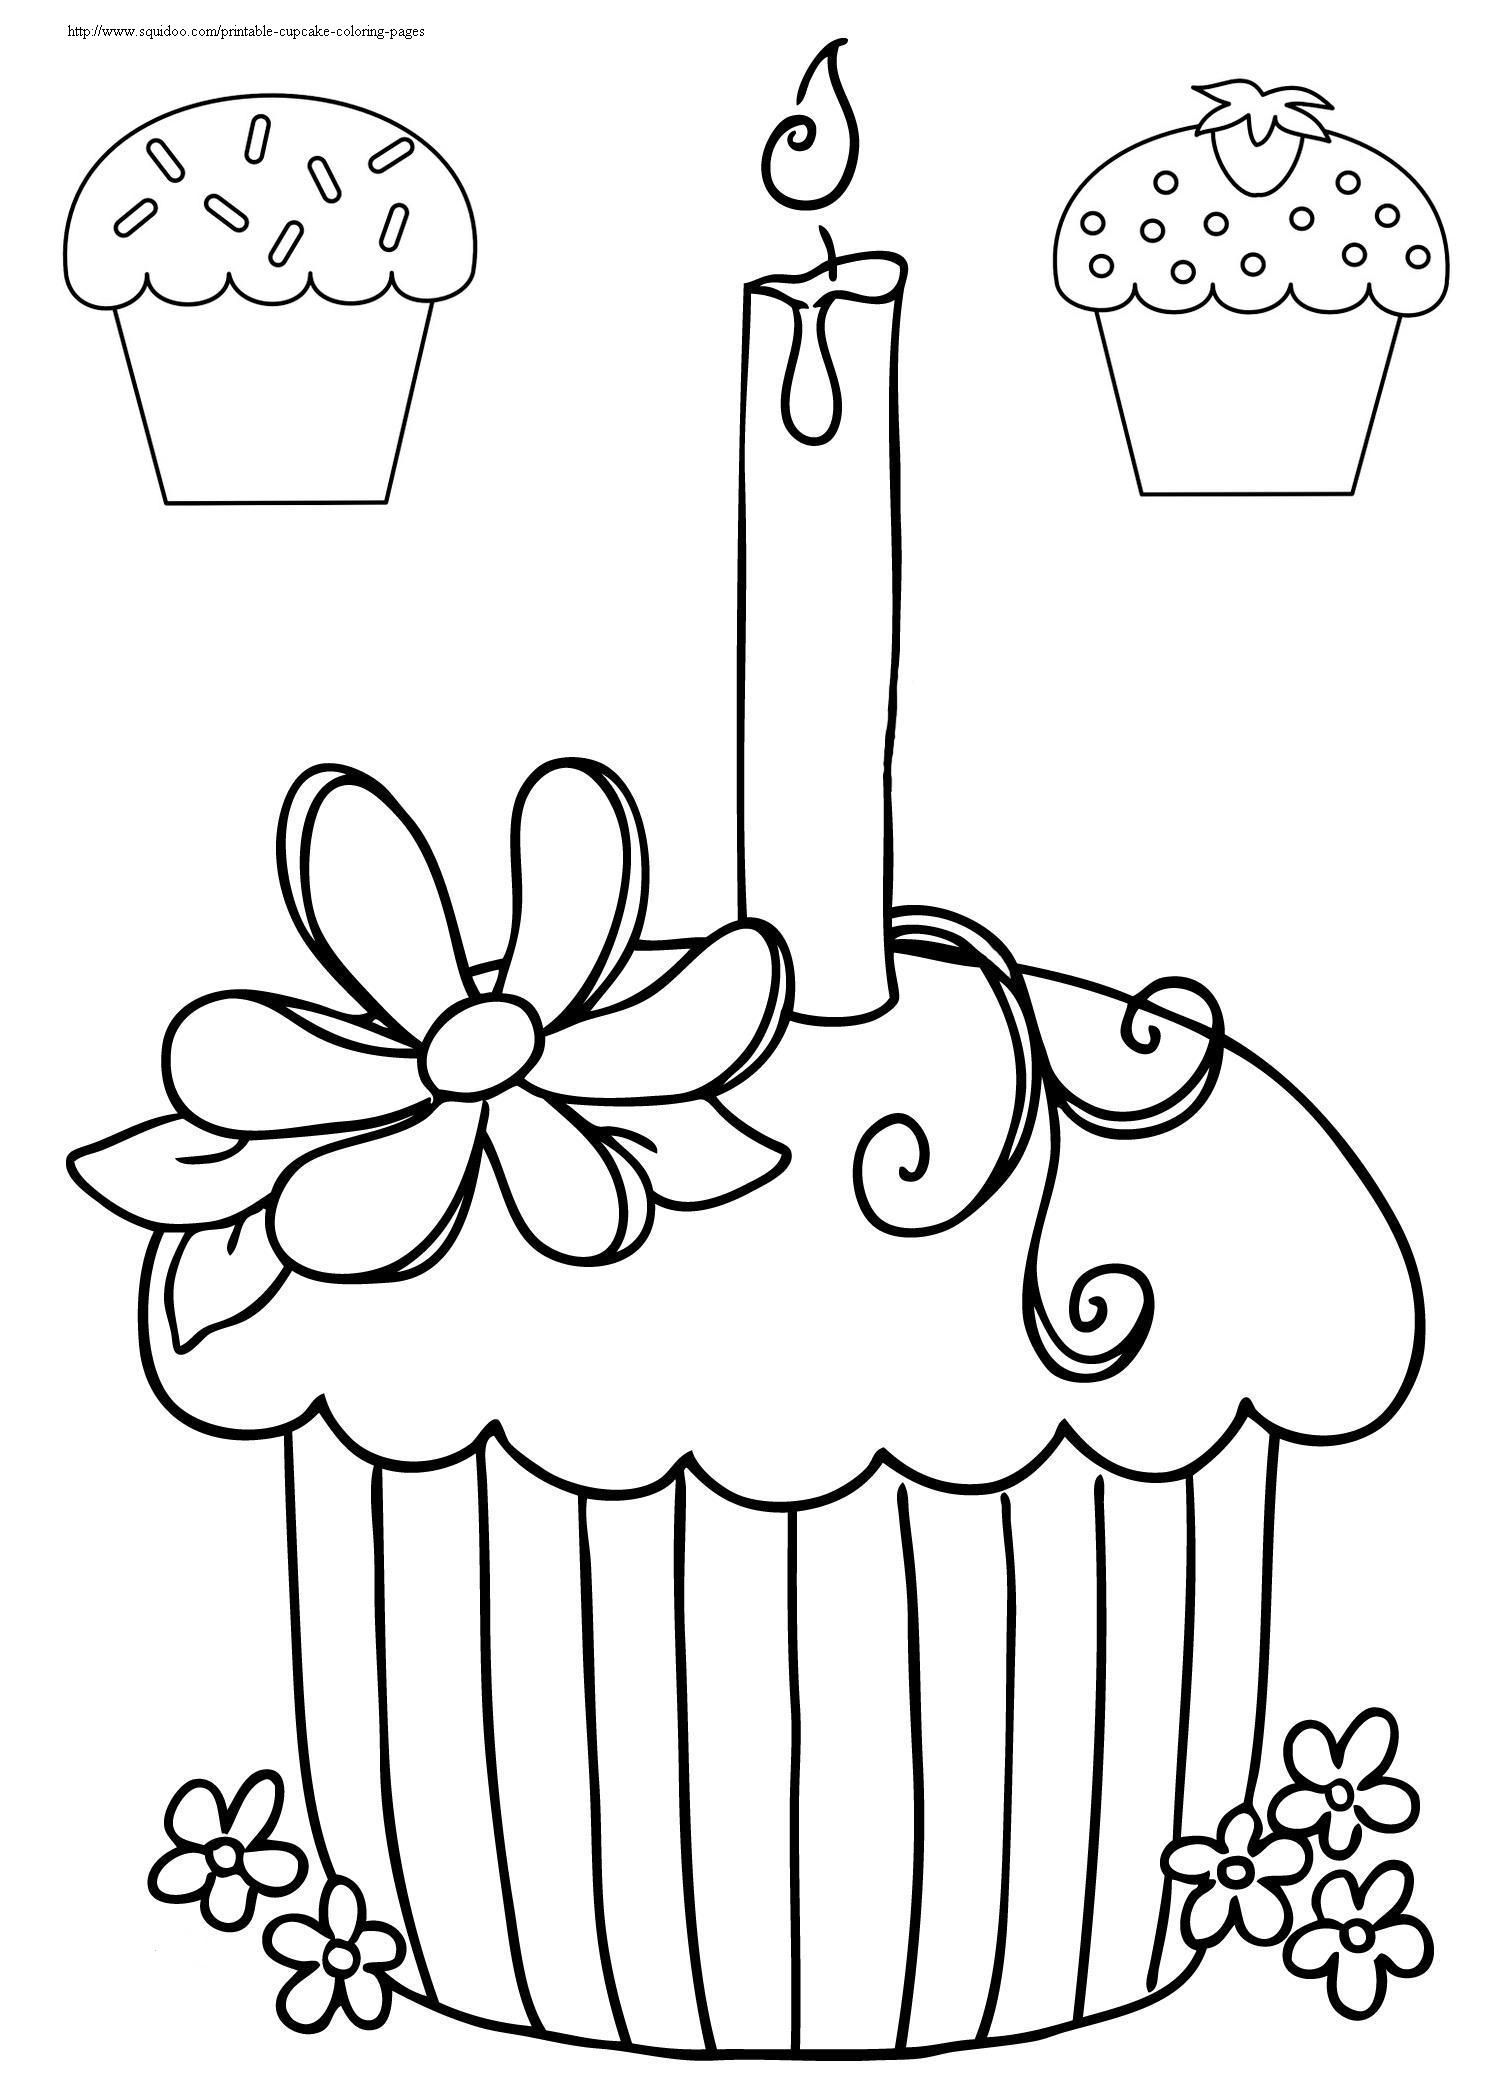 Printable Cupcake Coloring Pages | Adult Coloring Therapy ...